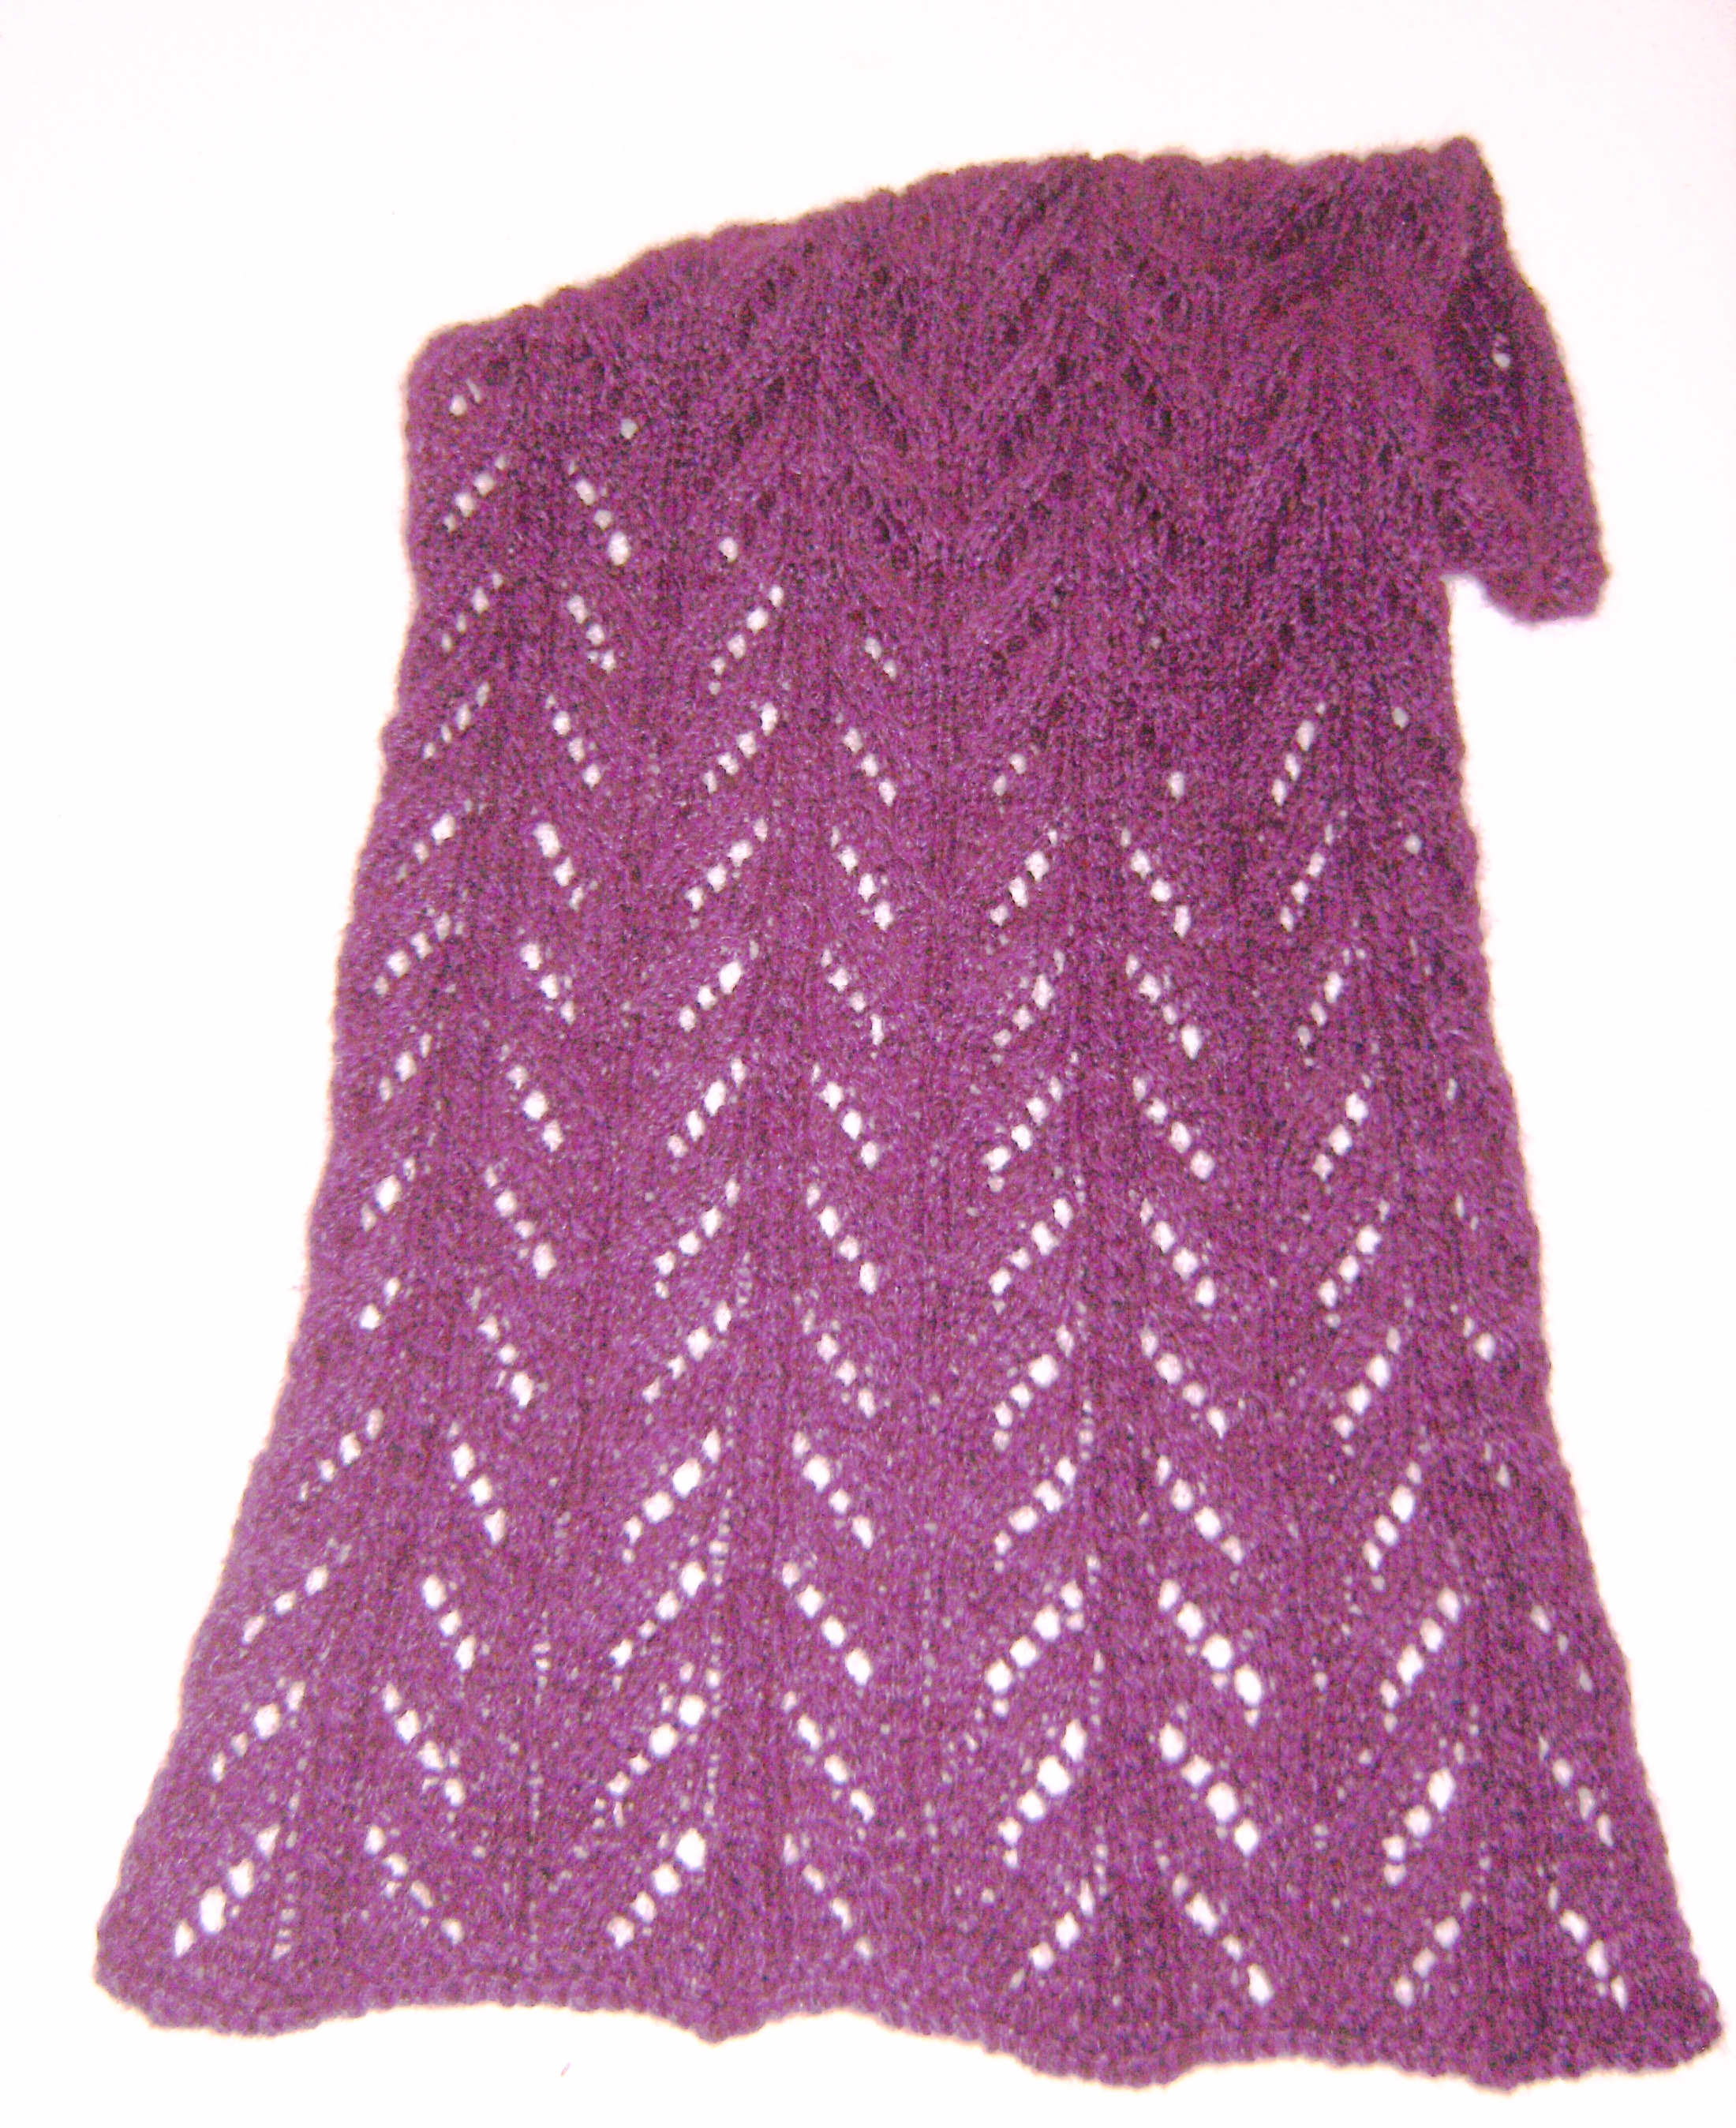 ... Crochet Patterns For Beginners pictures Crochet Scarf Free Patterns